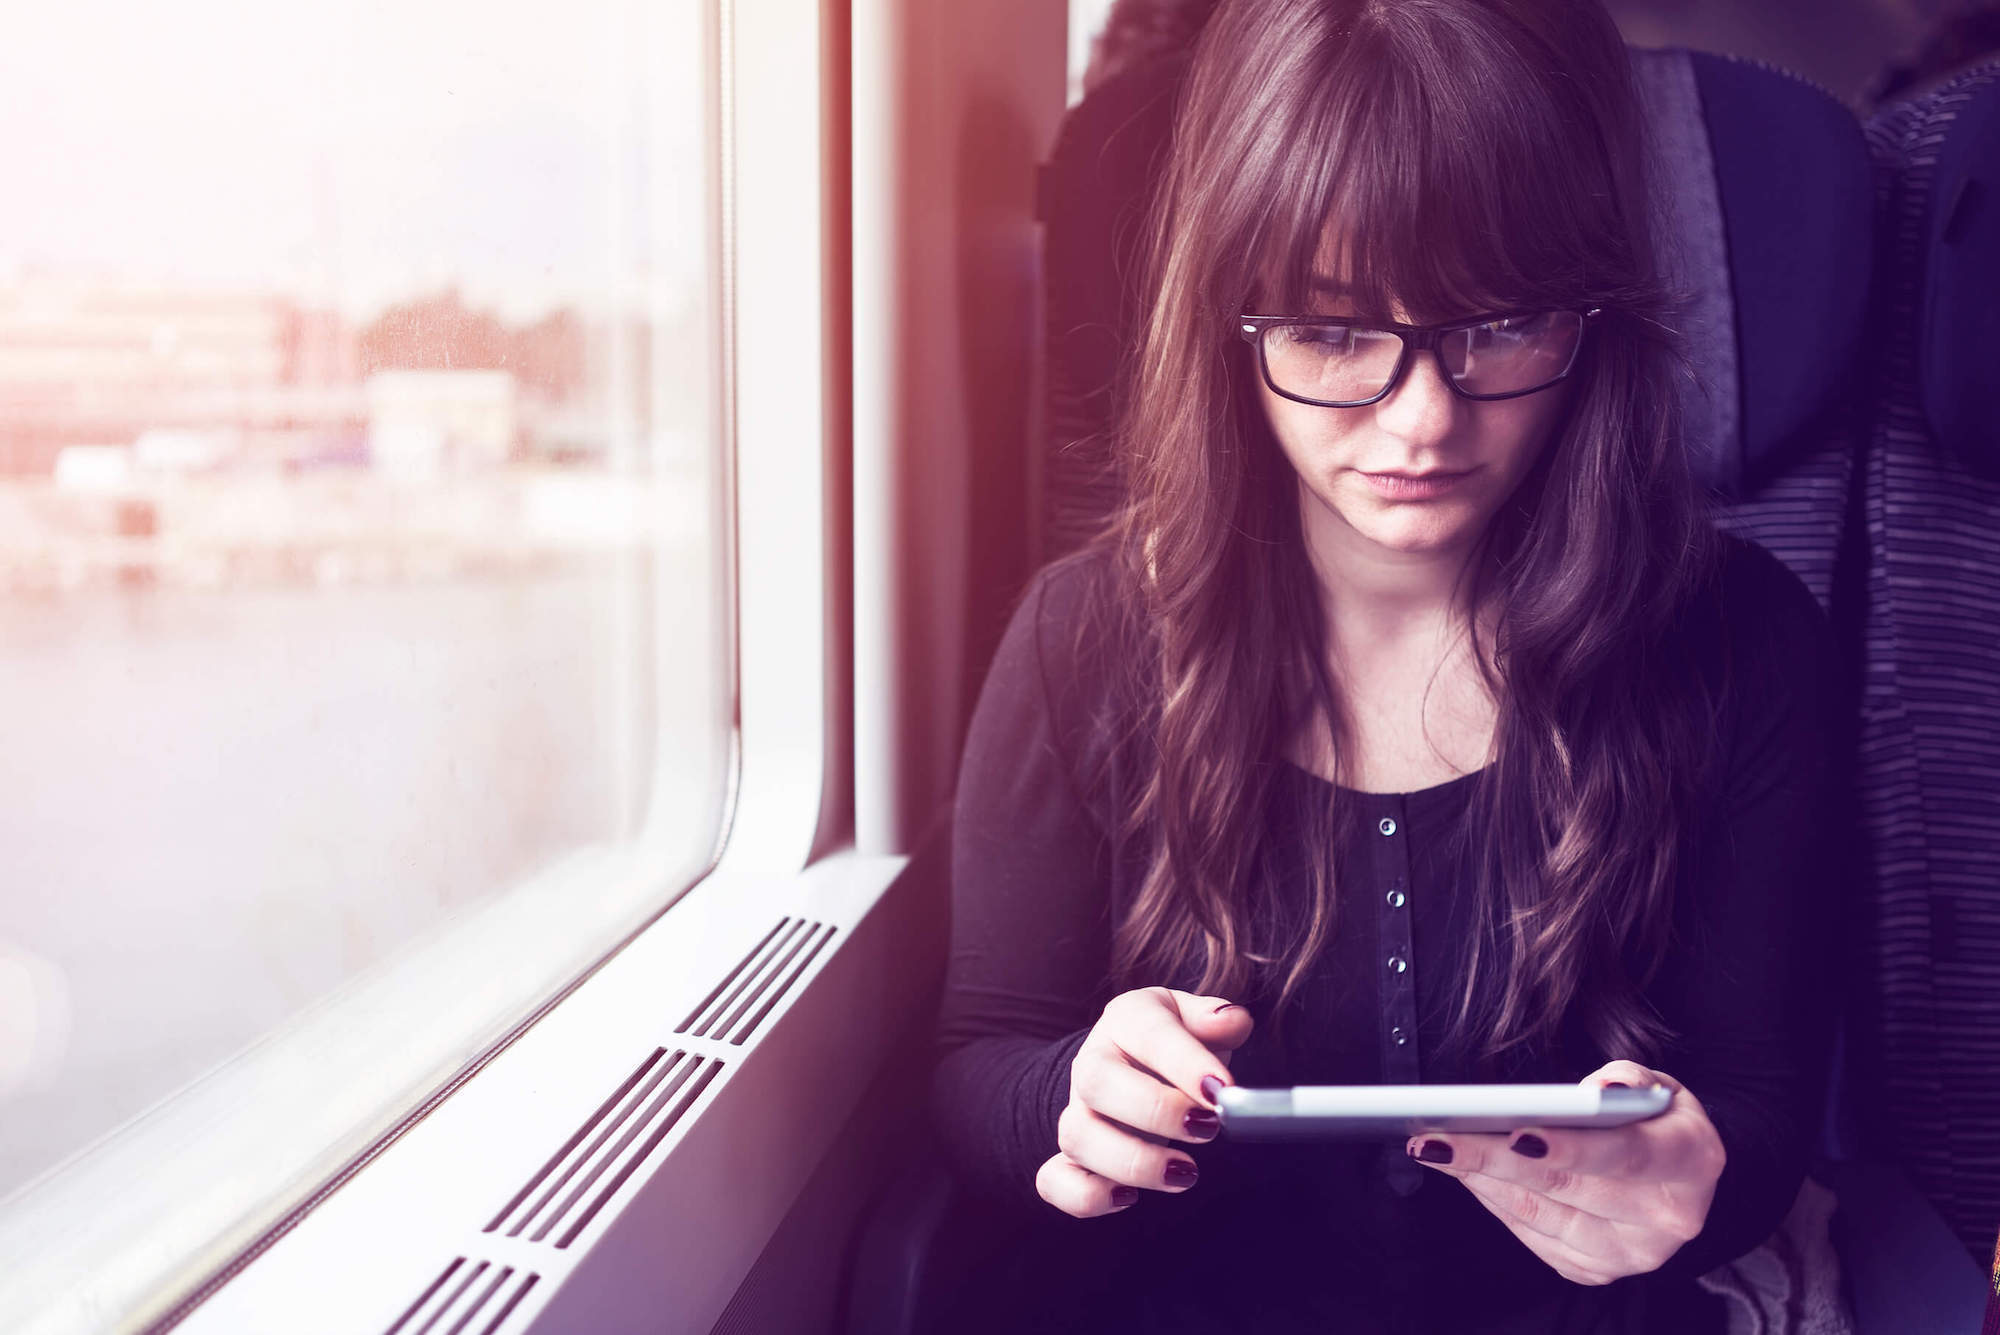 Should I get bangs: Girl on a train with long dark hair and blunt bangs with eyeglasses reading on her tablet